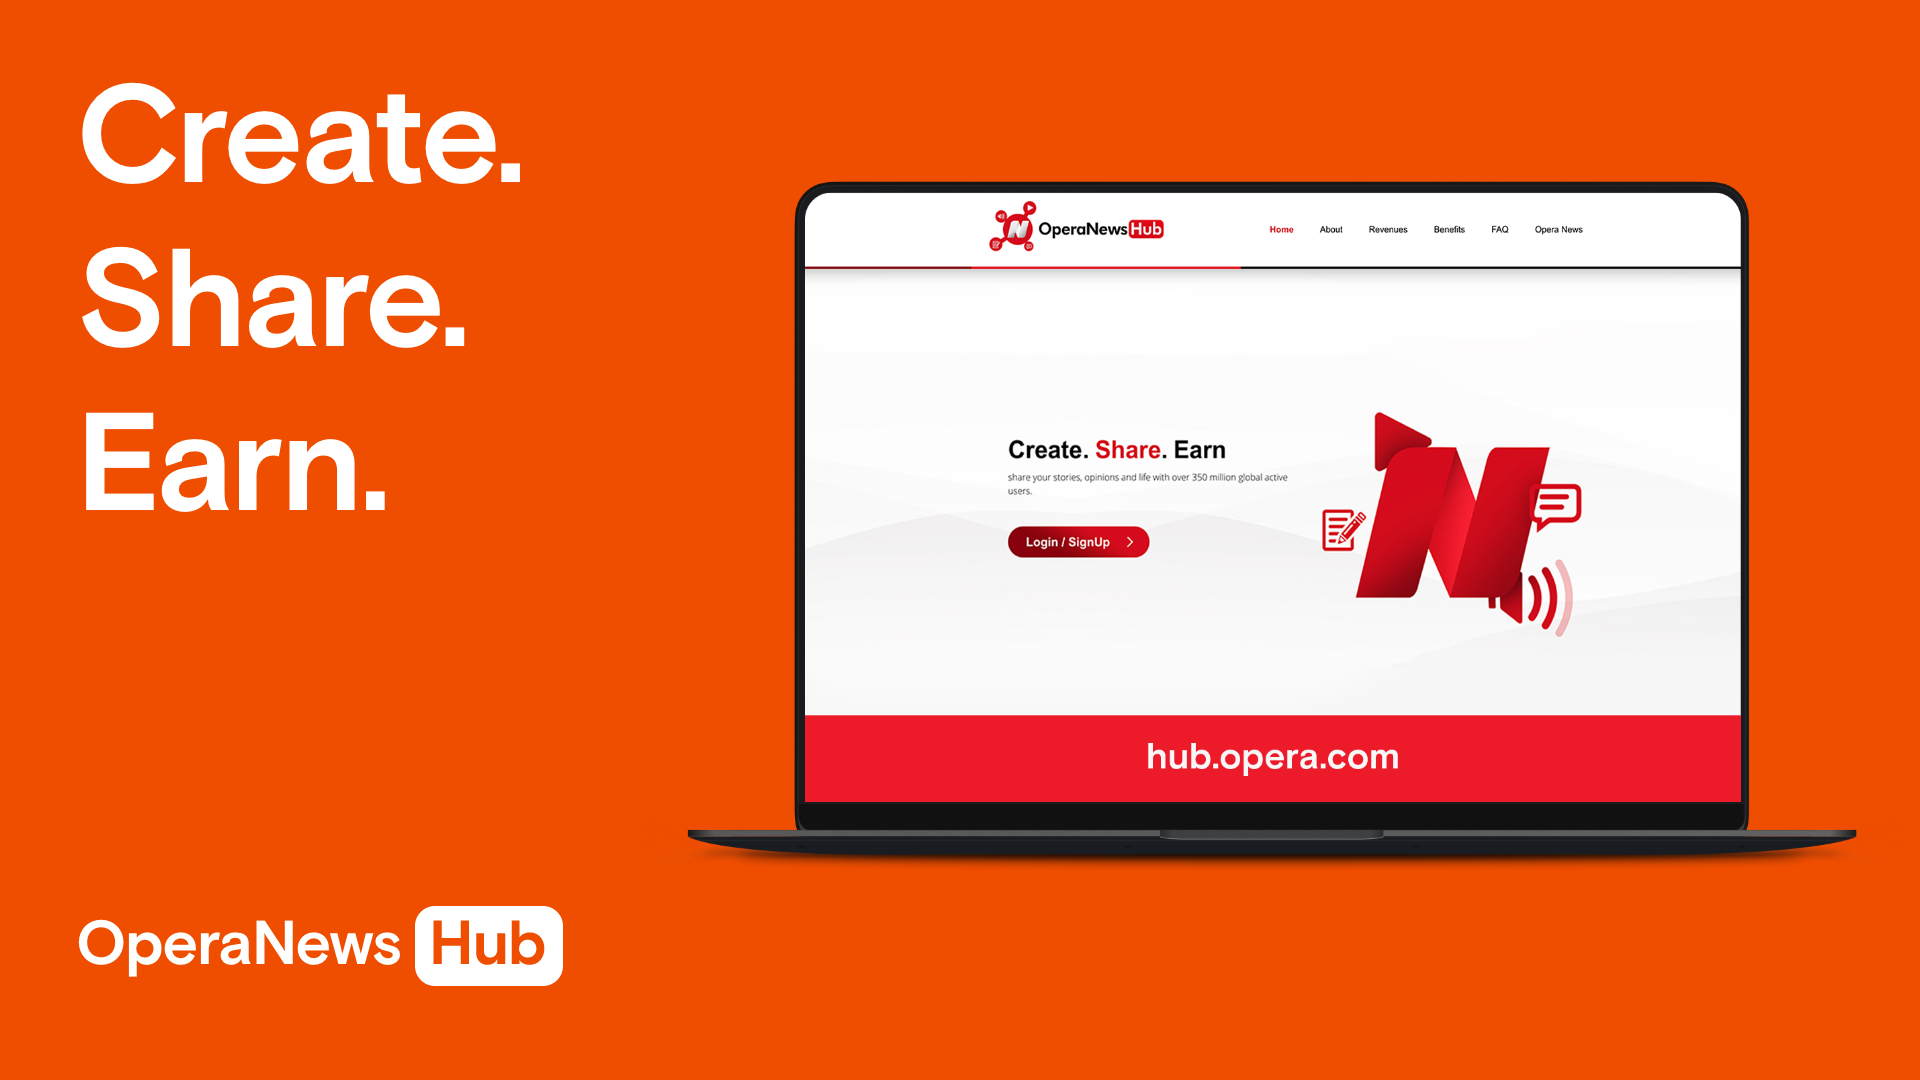 Make Money with Opera News Hub